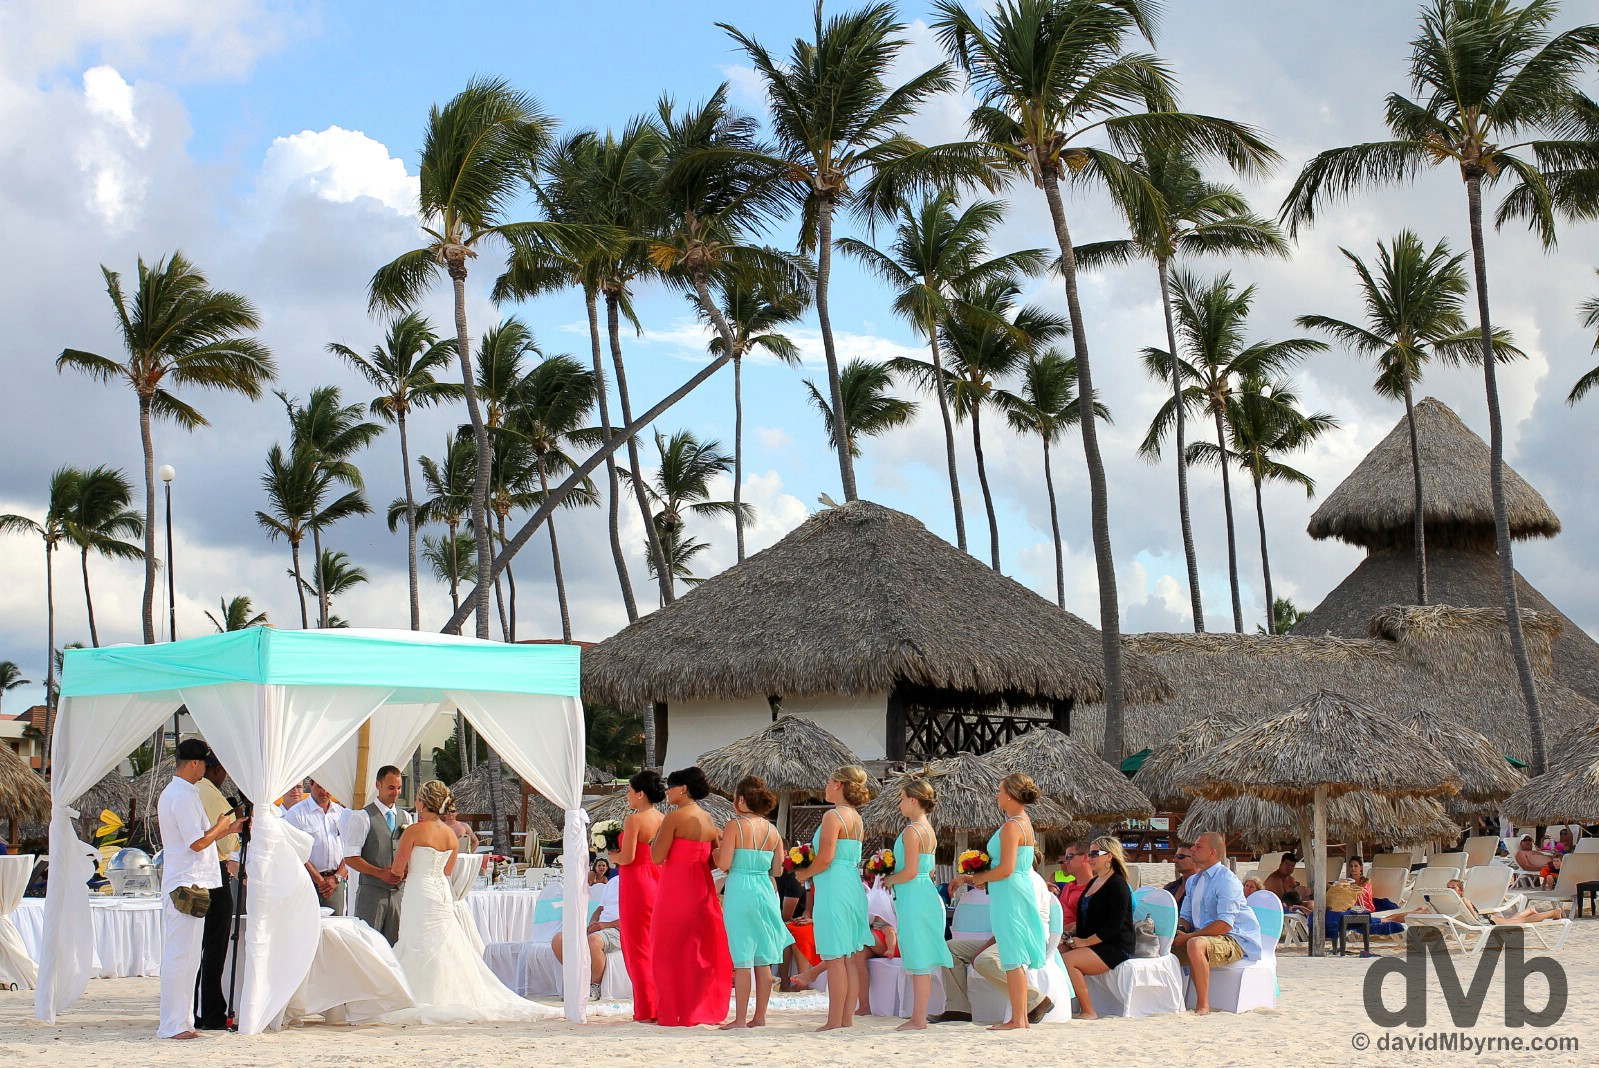 A wedding on Bavaro Beach, Punta Cana, Dominican Republic. May 27, 2015.